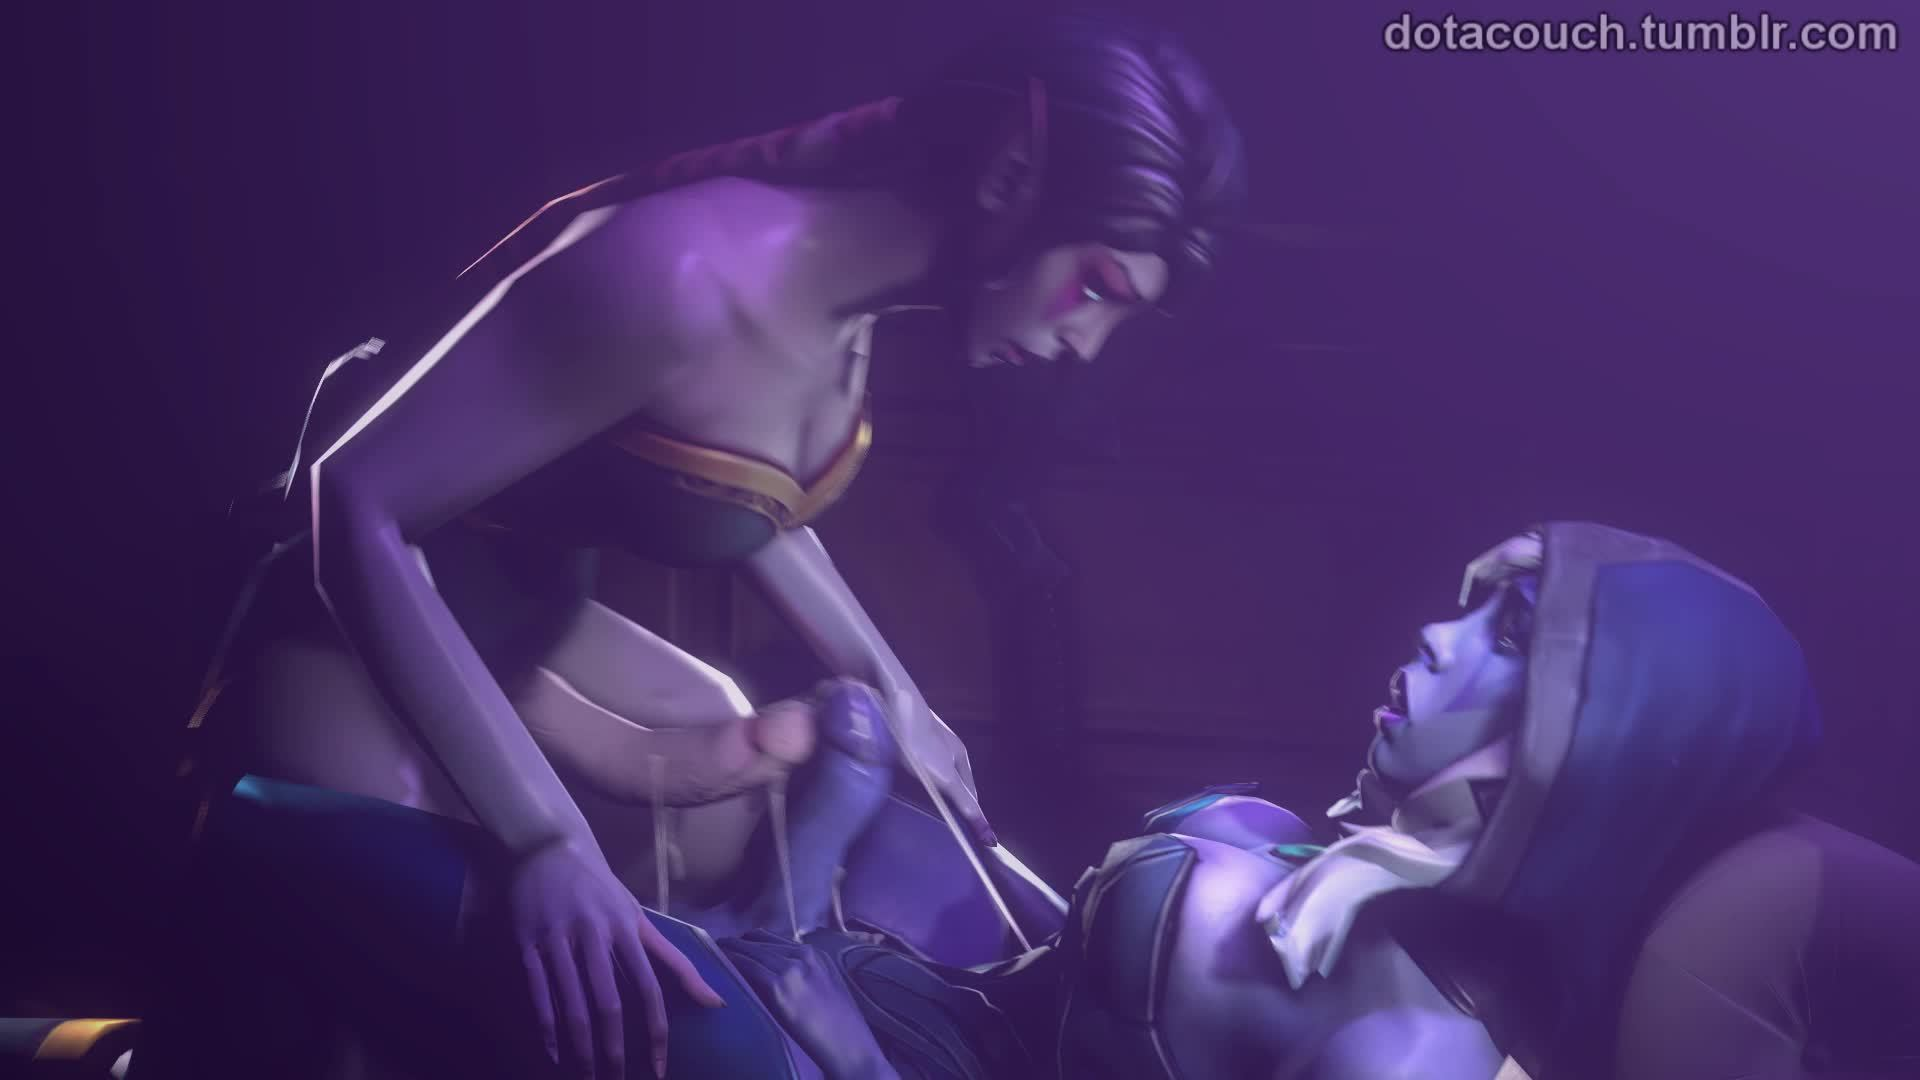 Dota 2 3d sex animation hentai photo